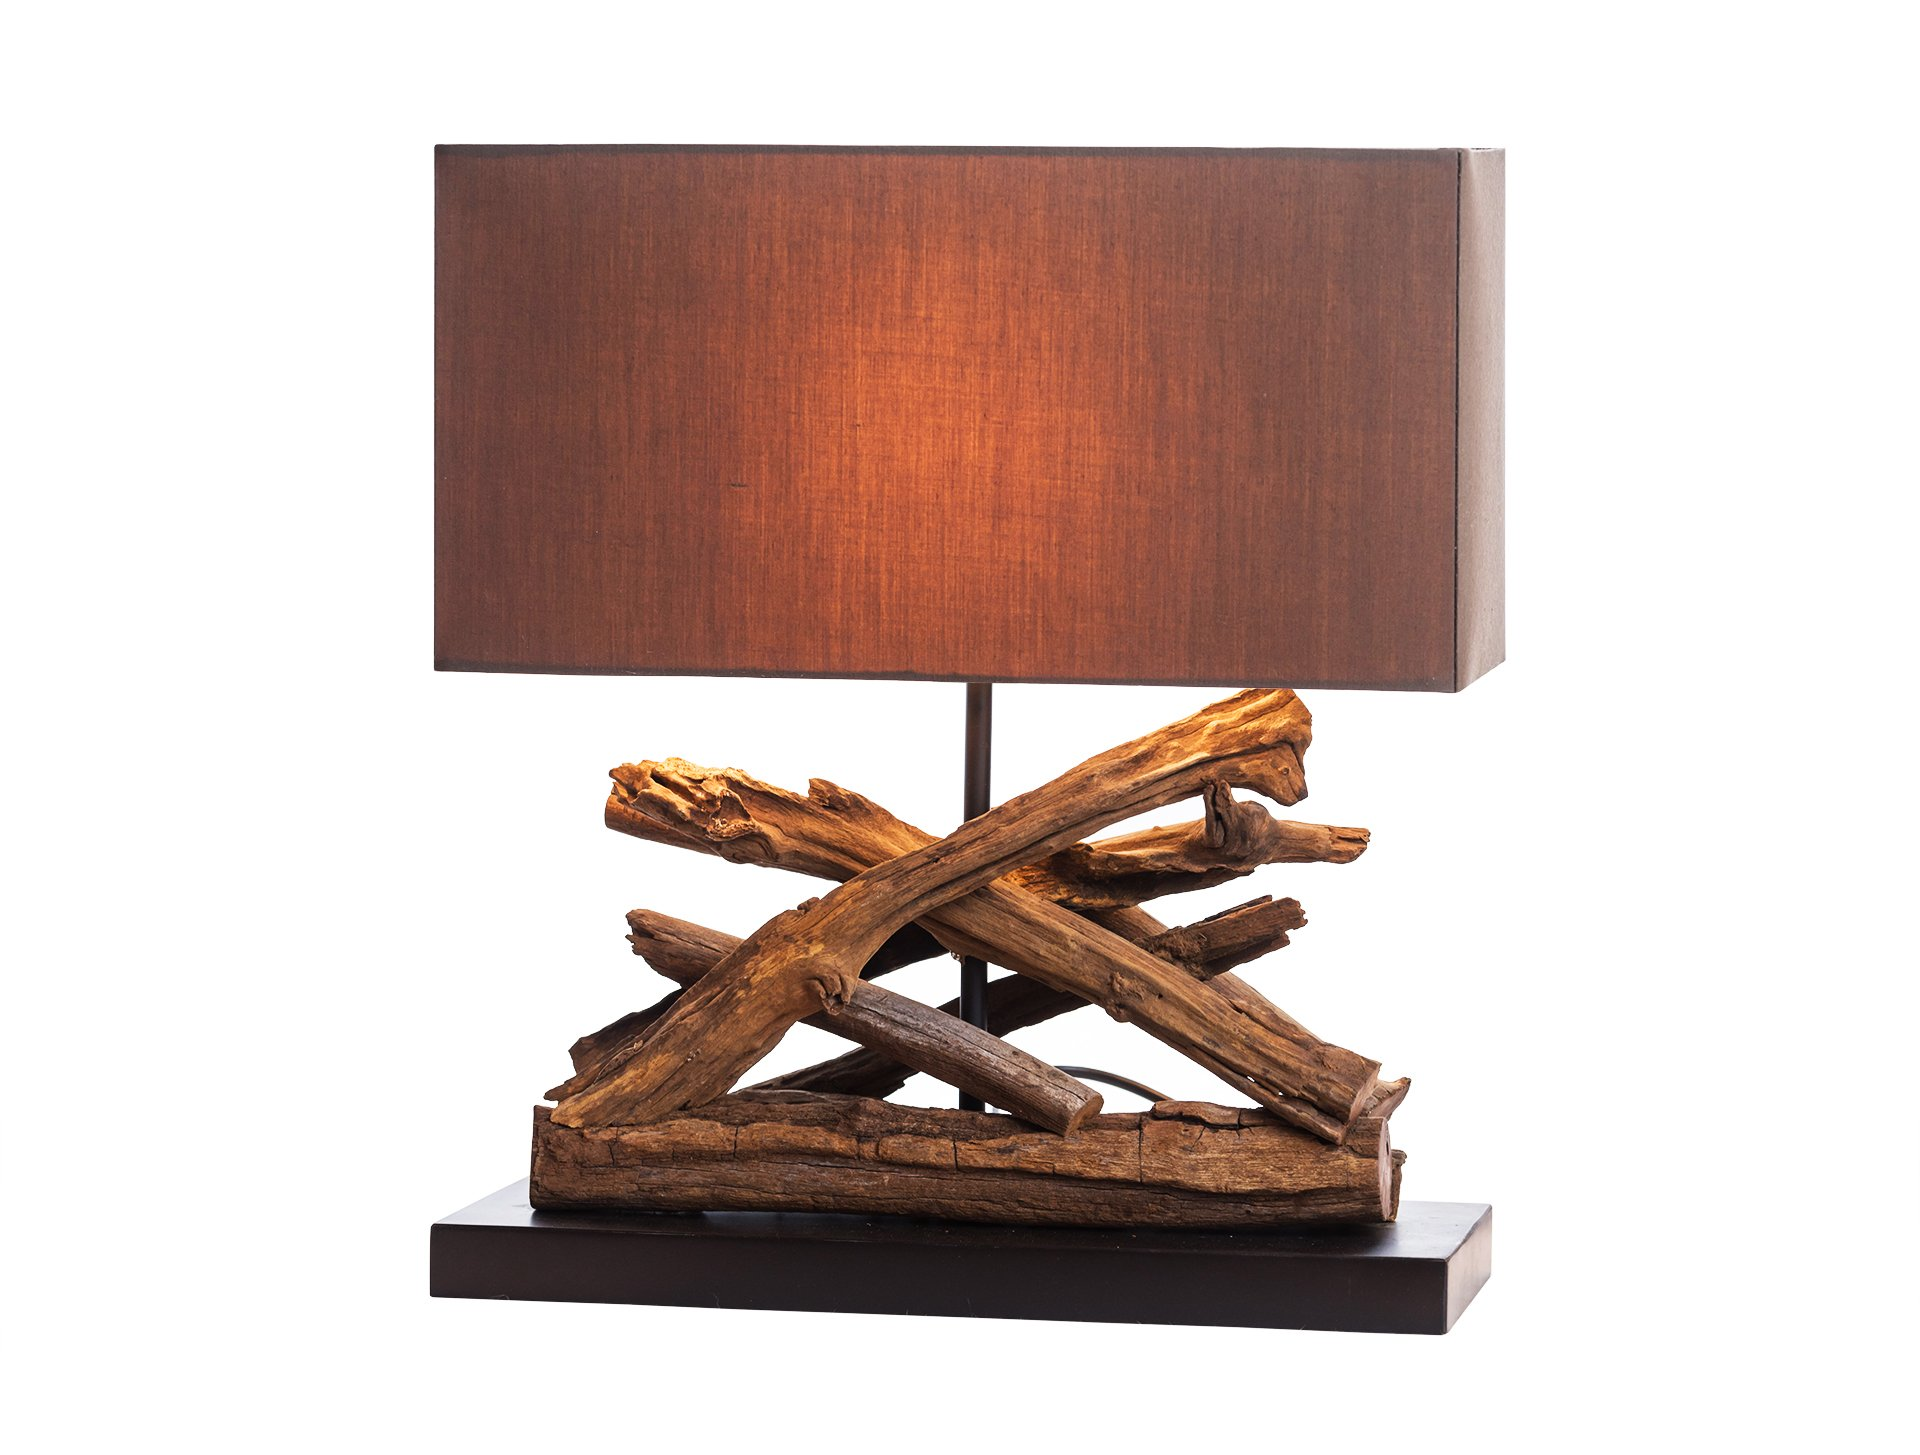 O'THENTIQUE Driftwood Branch Table Lamp | Rustic Salvaged Natural Wood | Brown Shade Perfect as Entry Table Lamp, Sofa Table Lamp for Beach House, Cottage, Cabin, Bedroom, Living Room Decoration